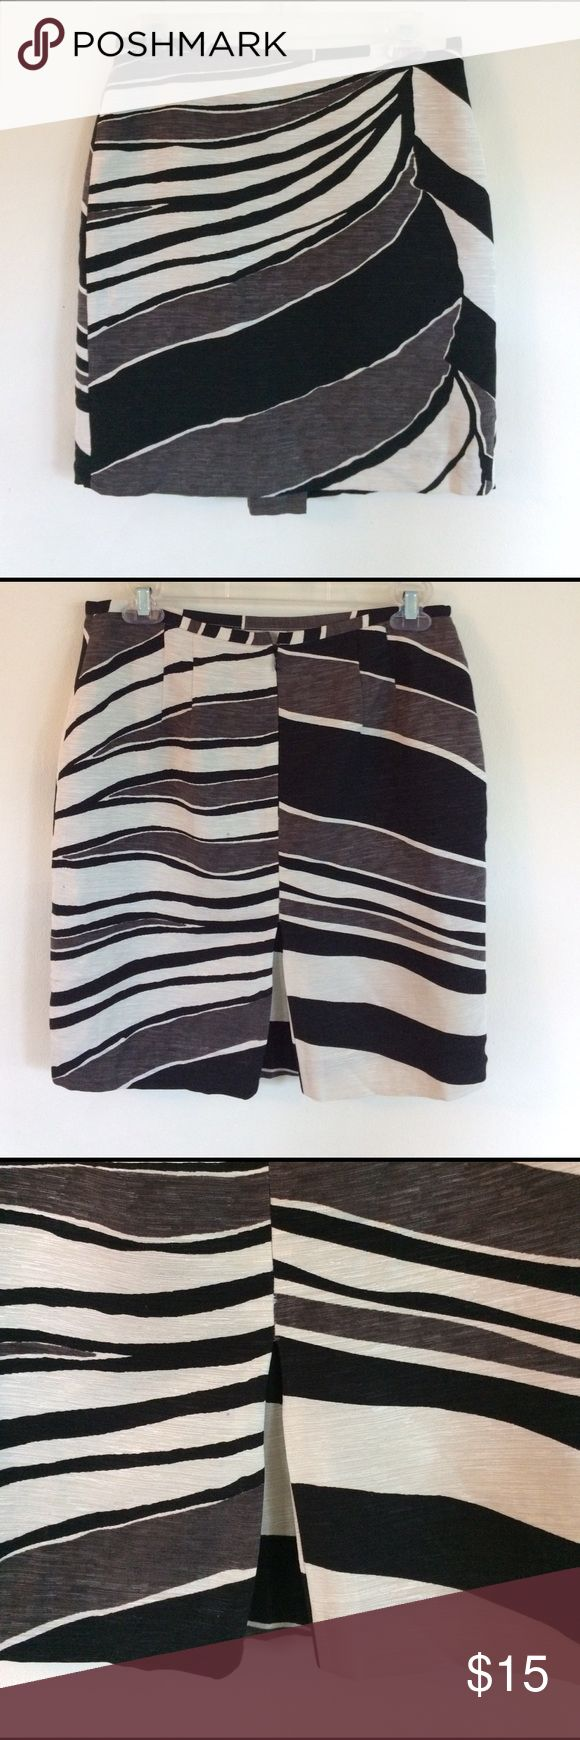 Anne Taylor petites pencil skirt Cute pencil skirt with bold print. Pleated slit in back. Great for the office. Ann Taylor Skirts Pencil